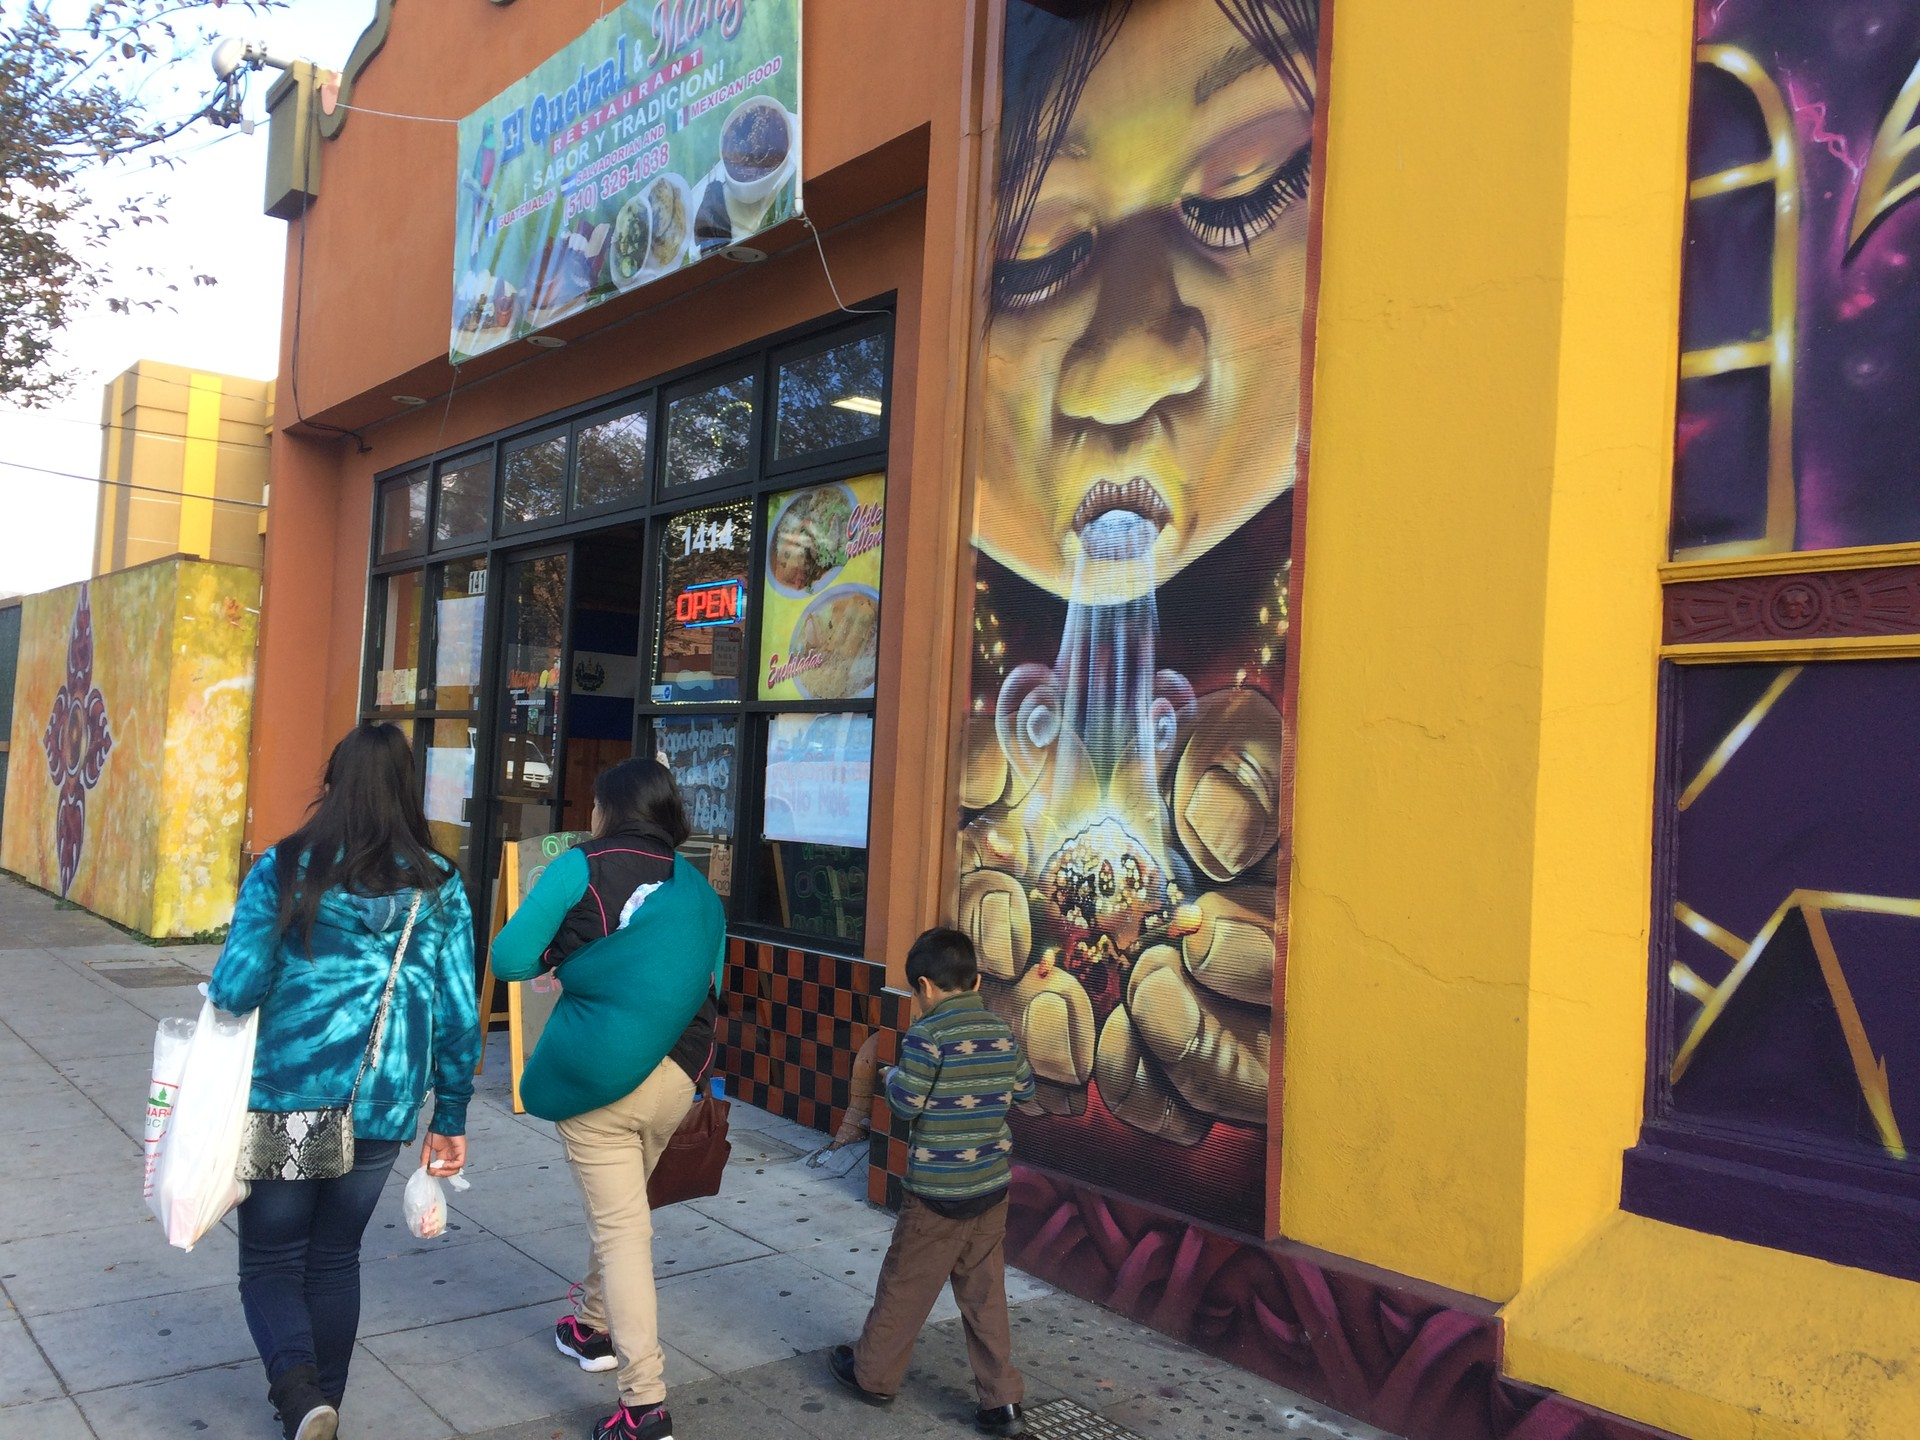 A mural by the Eastside Arts Collective is one of many that decorate stores and other buildings on Fruitvale Ave. The neighborhood has become home to many artists, say long time residents.